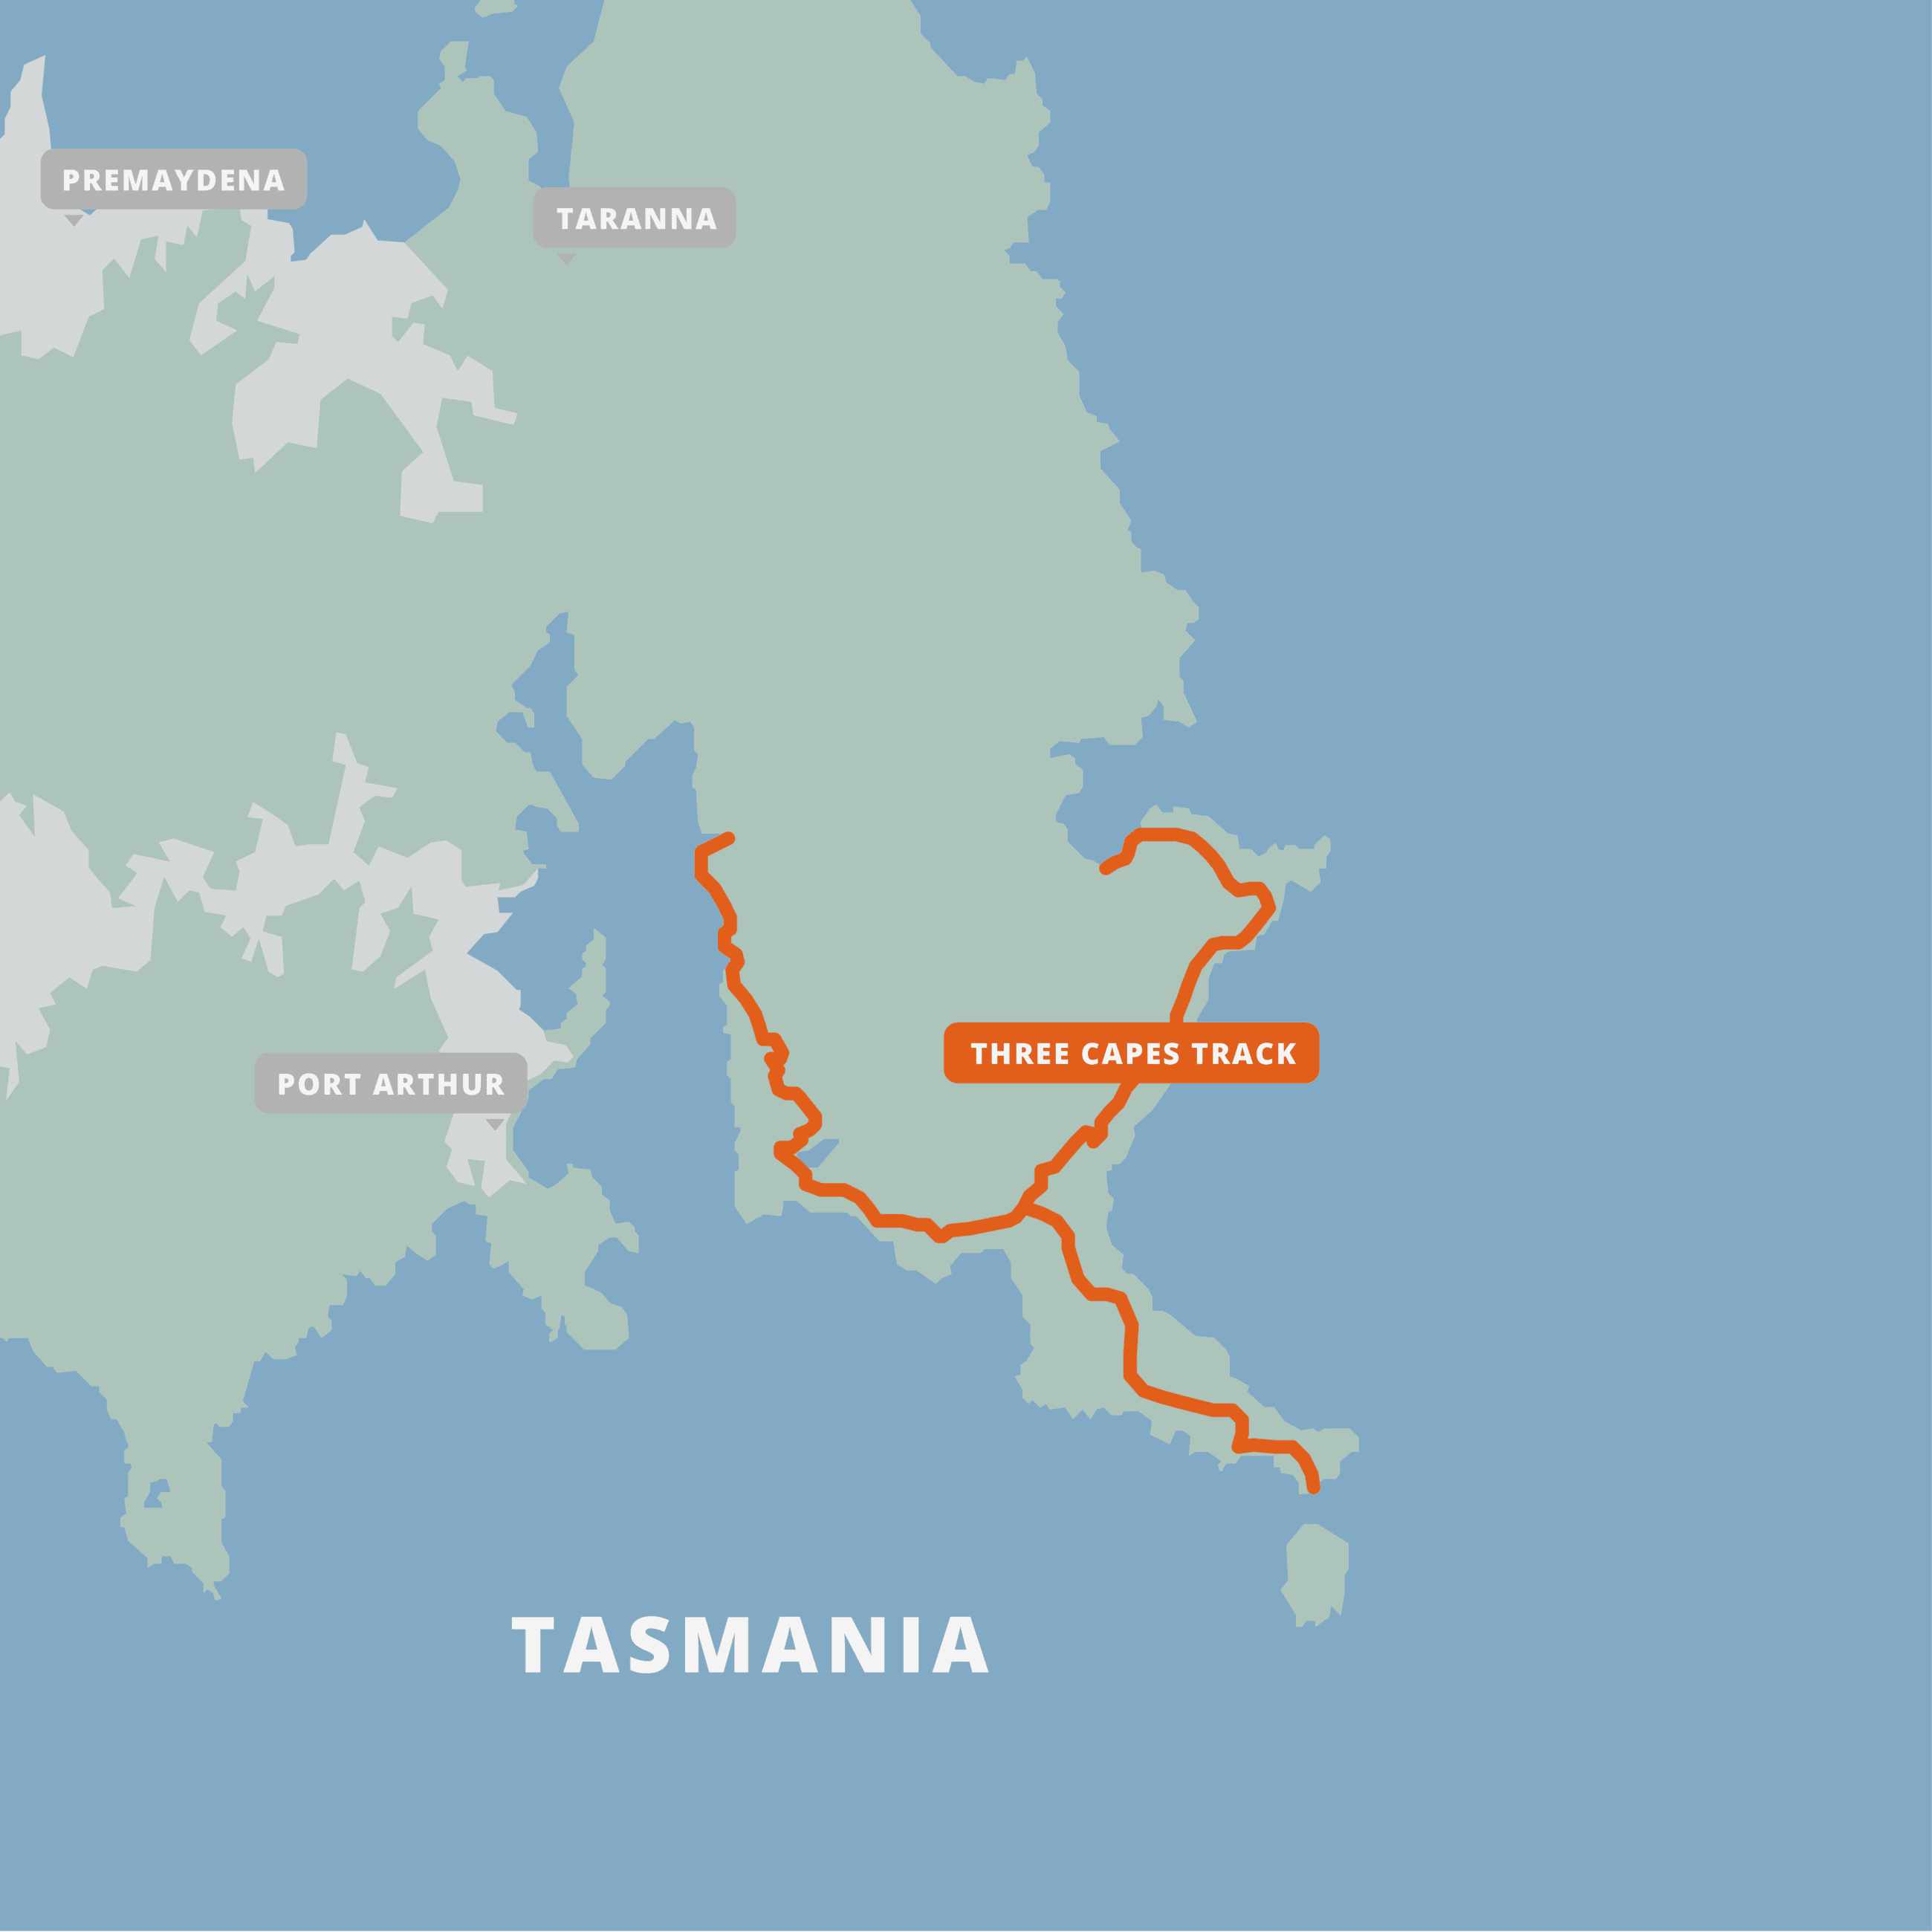 A map of the Three Capes Track.